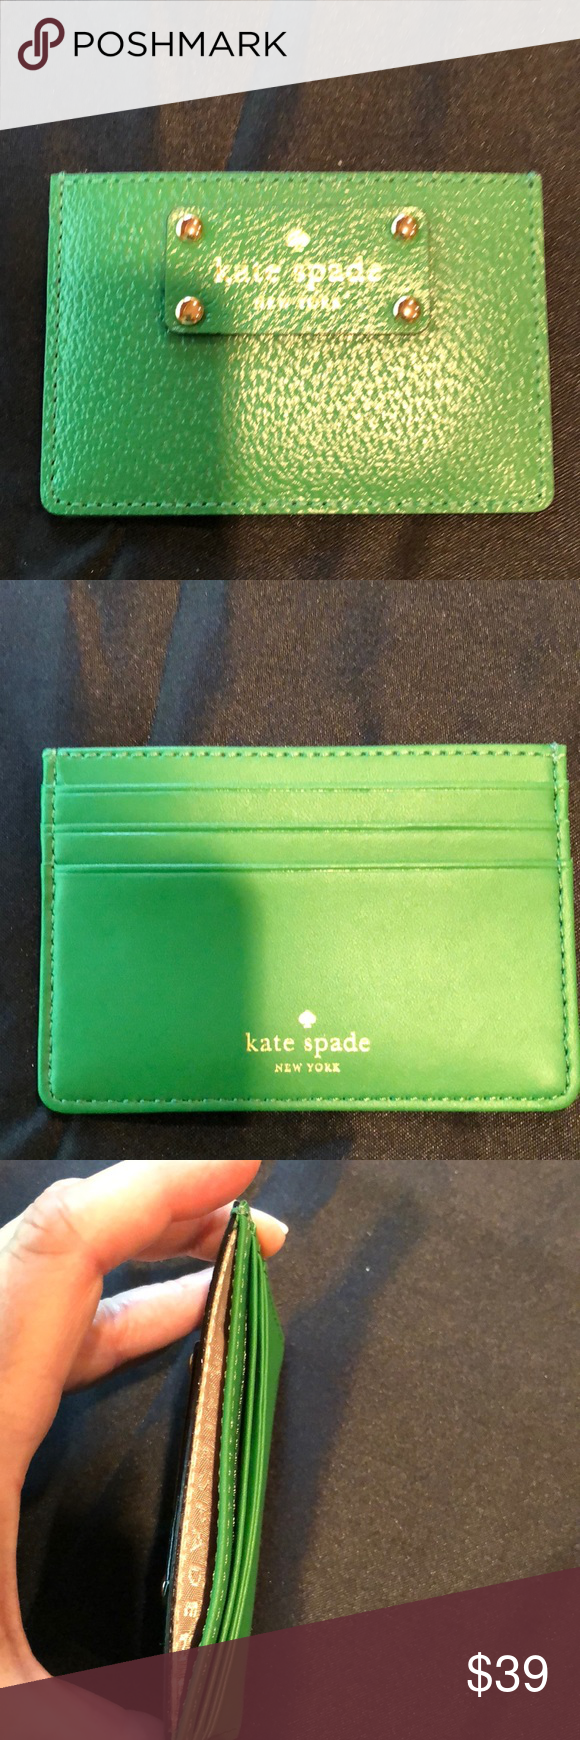 kate spade graham sprout green card case nwt with images